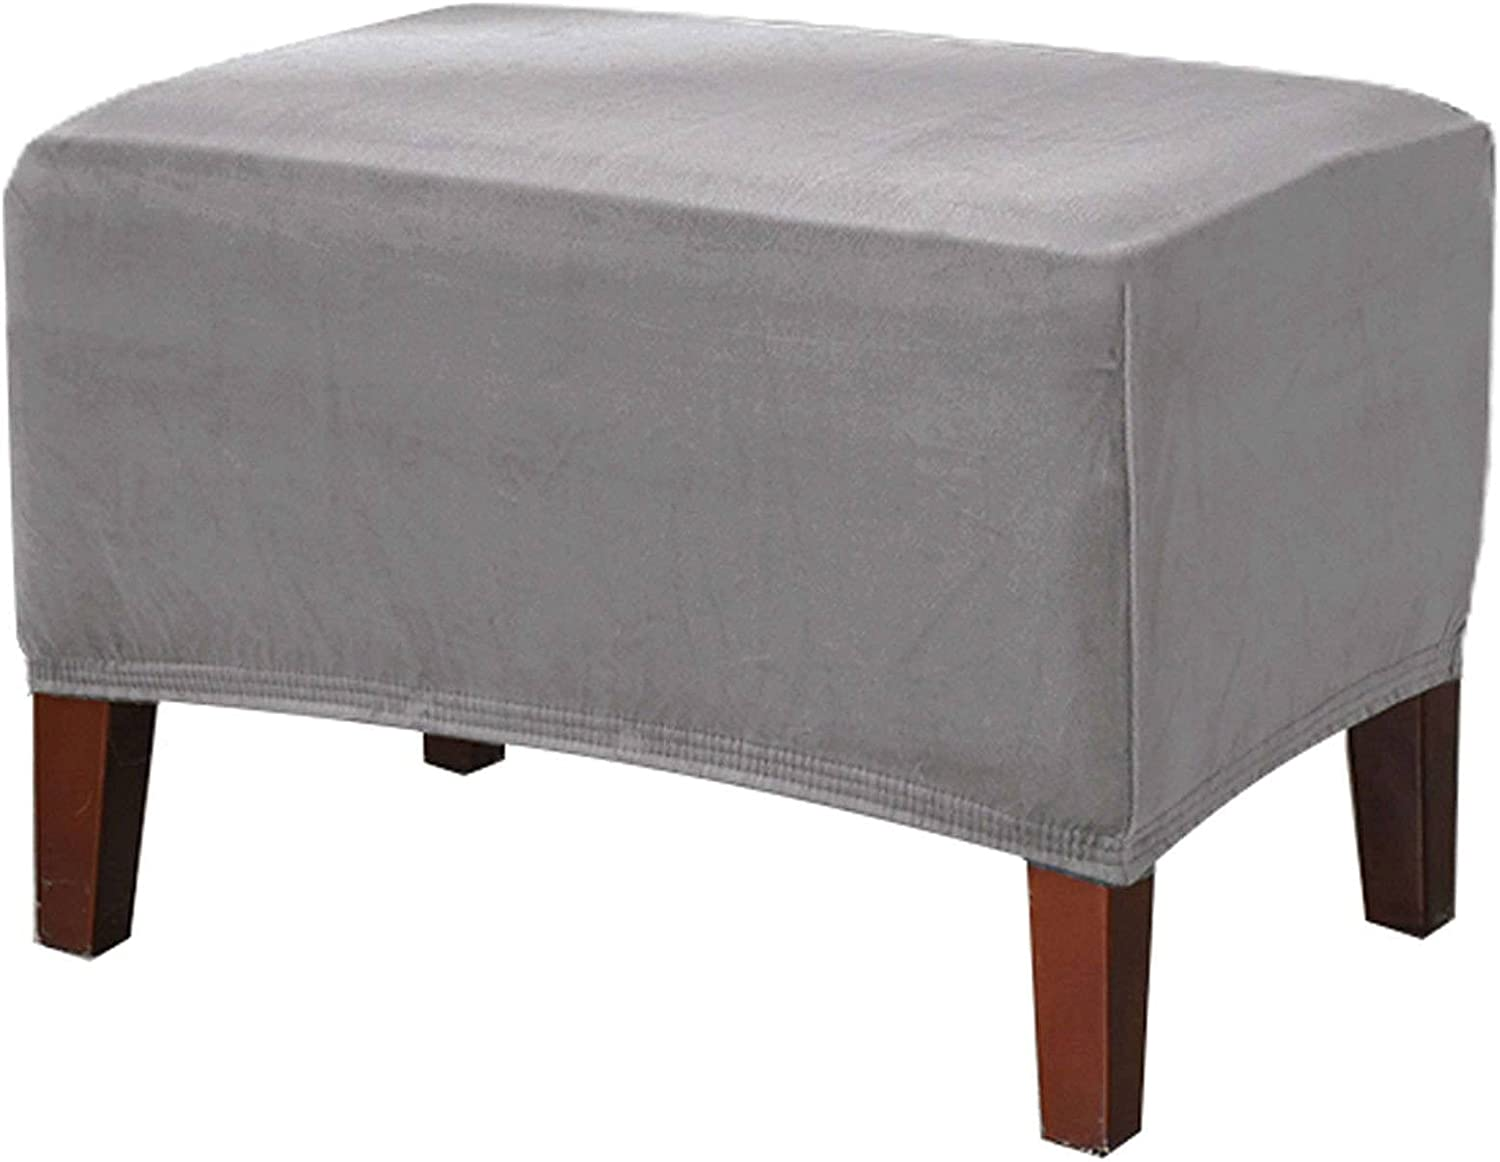 Selling Velvet Free shipping on posting reviews Ottoman Cover Rectangle Stretch Footst Slipcover